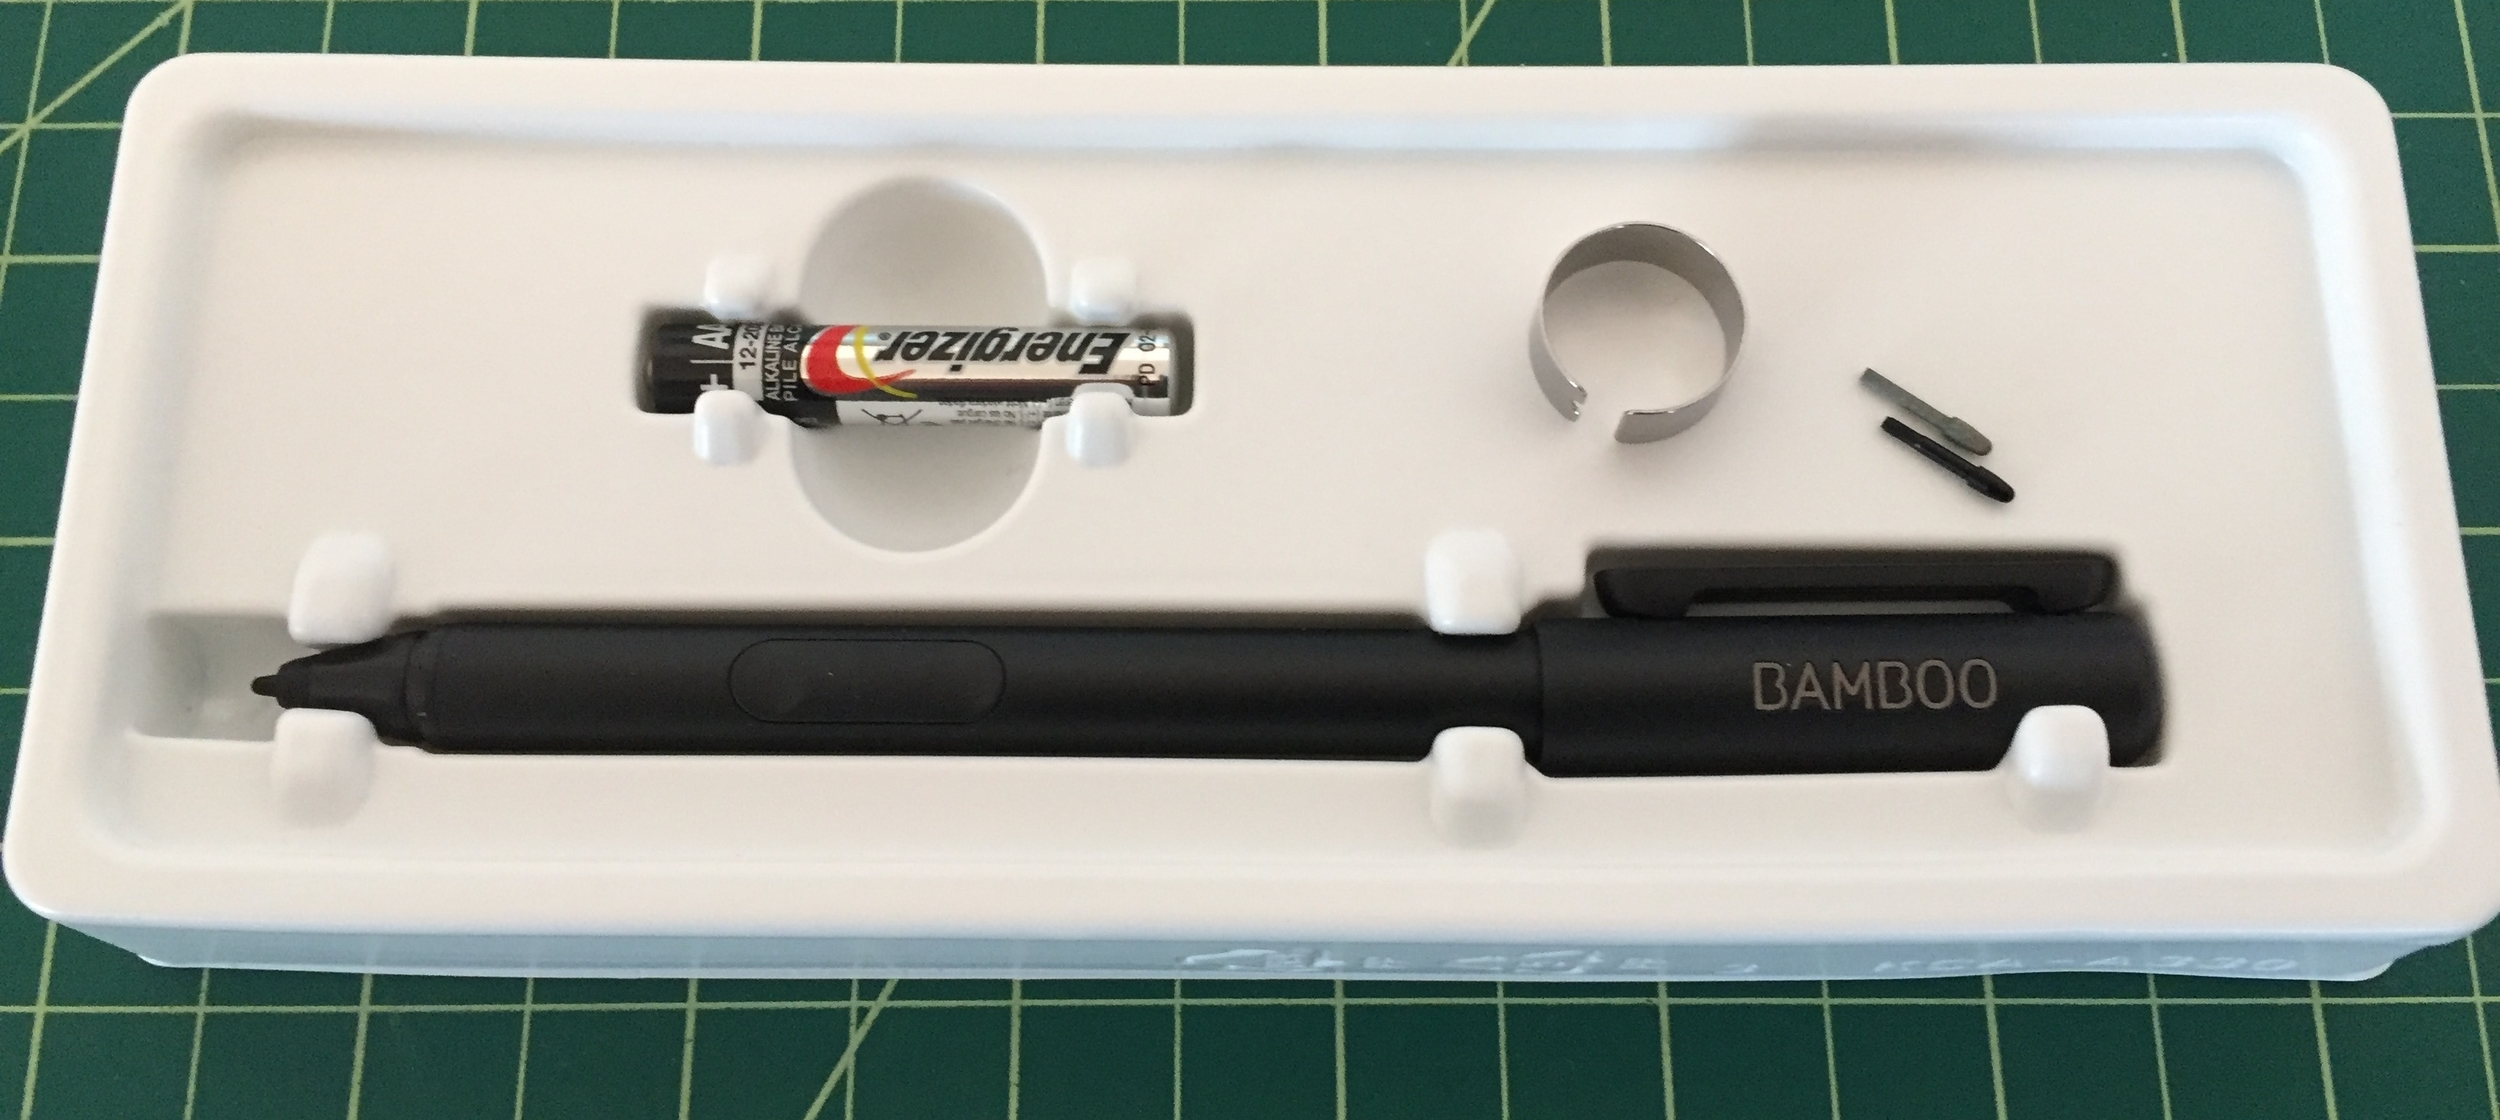 The package includes a AAAA battery, extraction ring and two spare nibs.